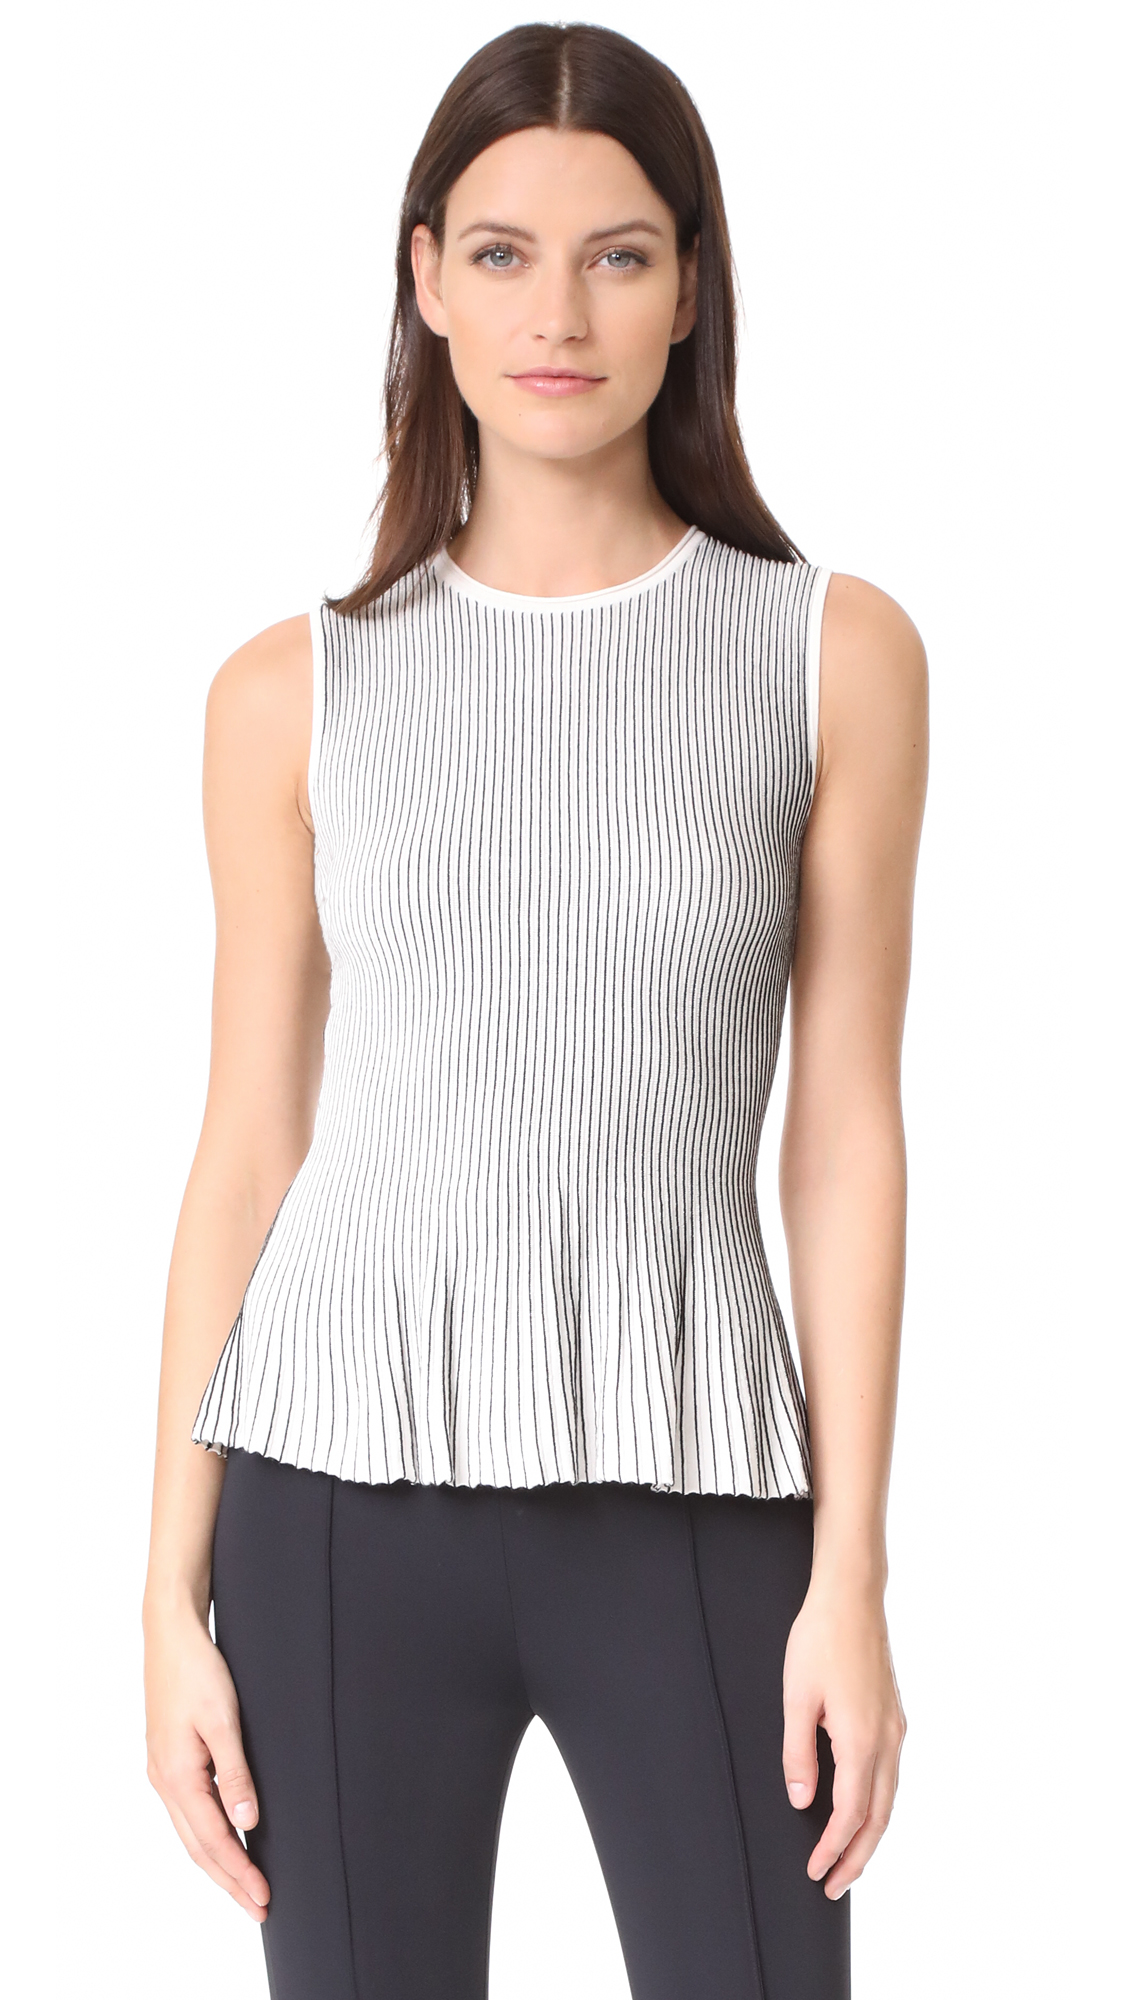 Theory Canelis Knit Top - Eggshell/Black